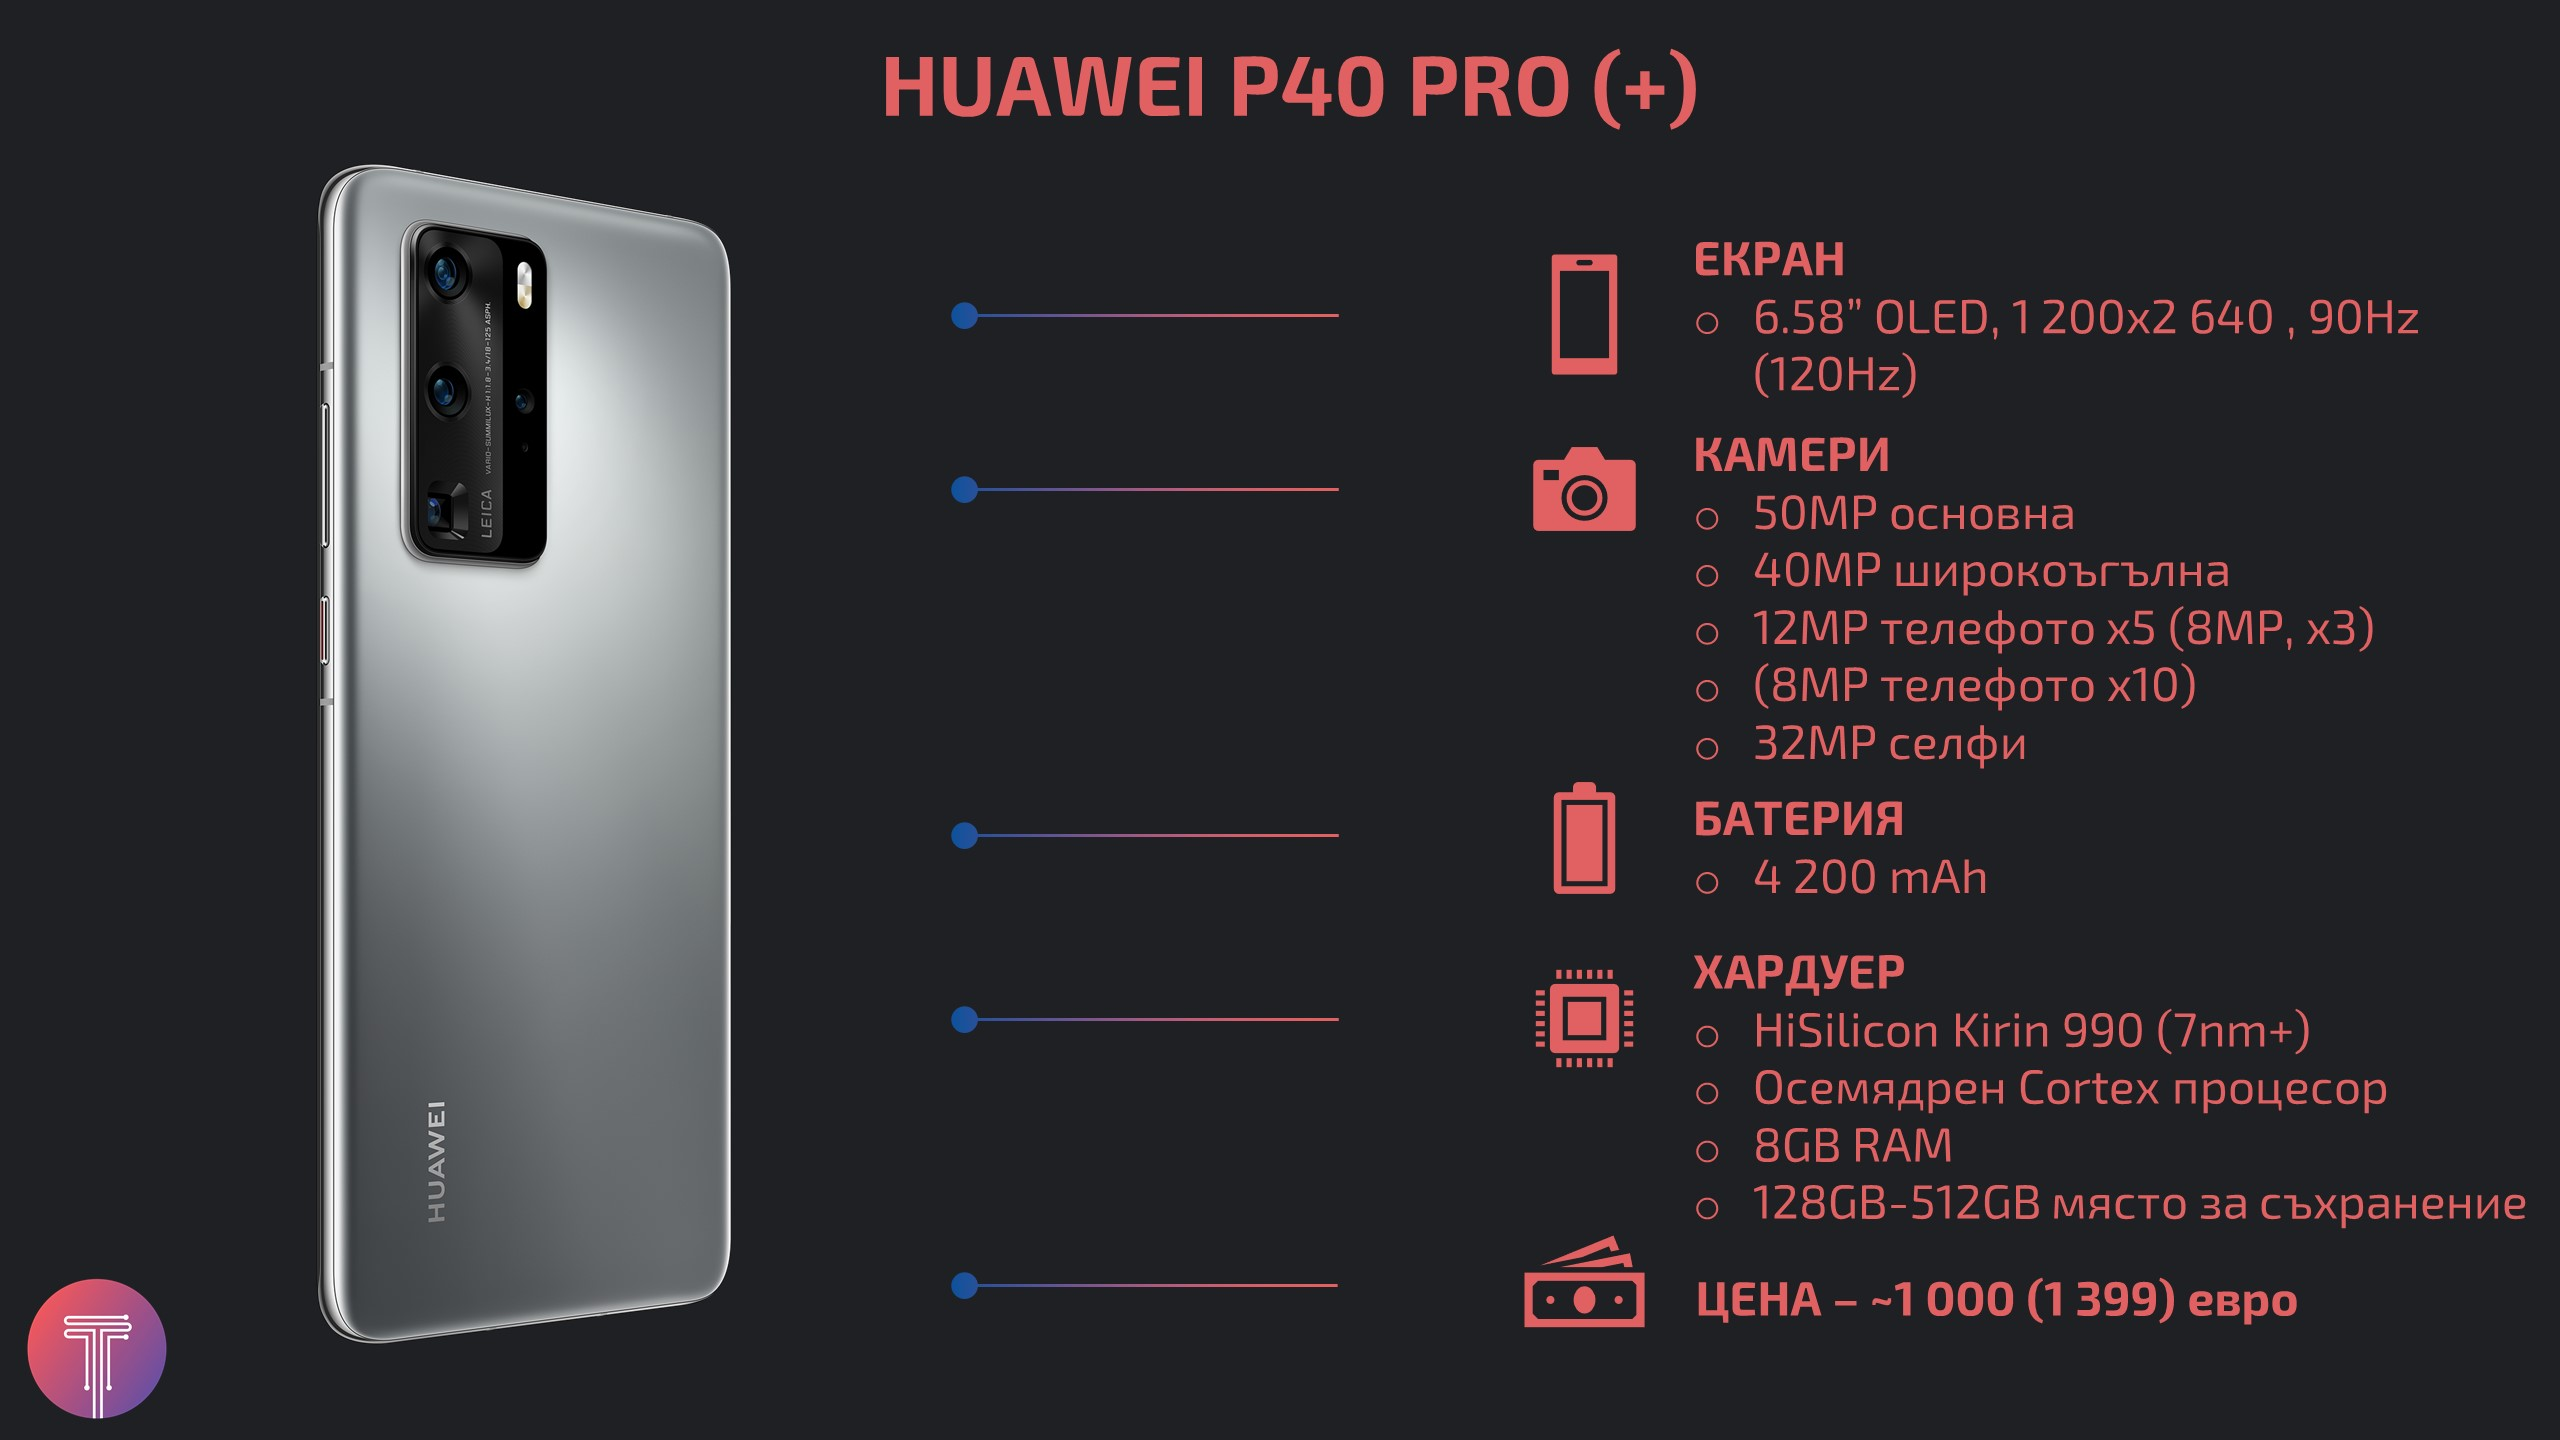 Huawei-p40-pro-infographic